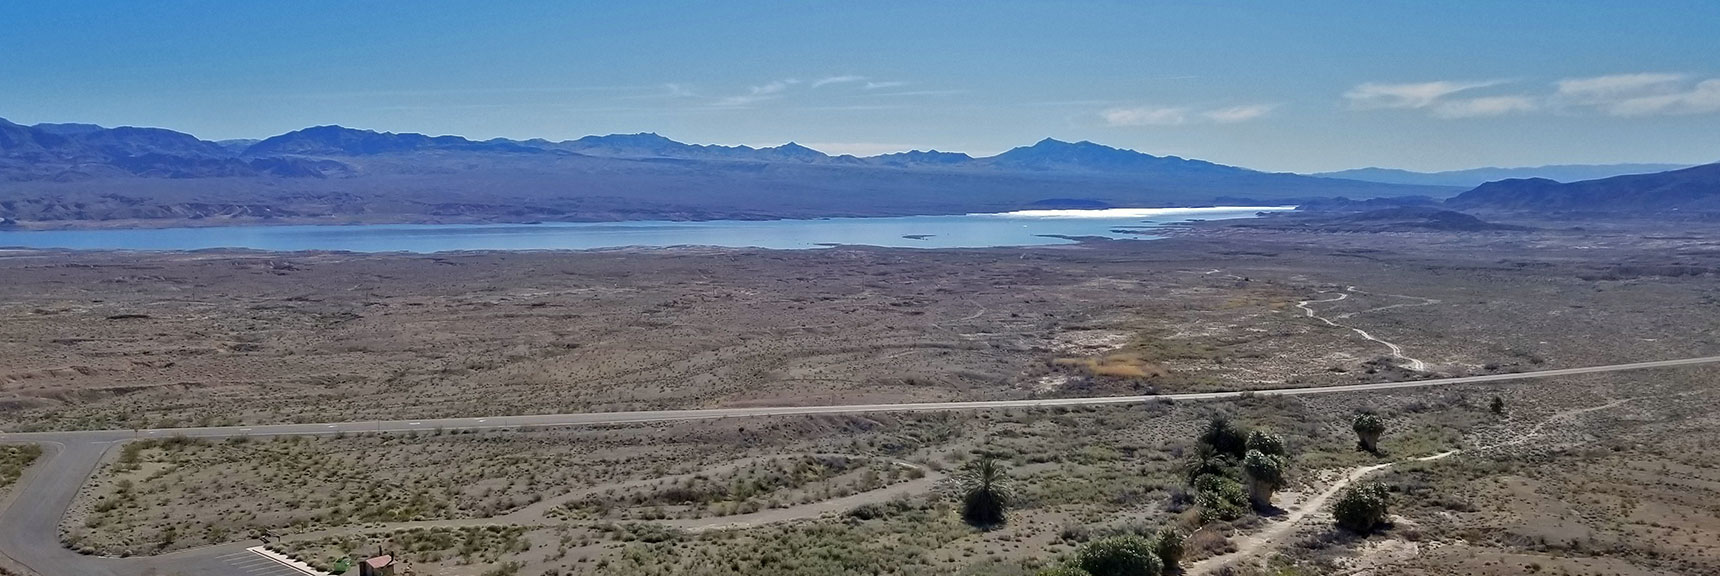 Overton Arm of Lake Mead Viewed from Muddy Mountains Above Roger's Spring On Northshore Road in Lake Mead National Park, Nevada